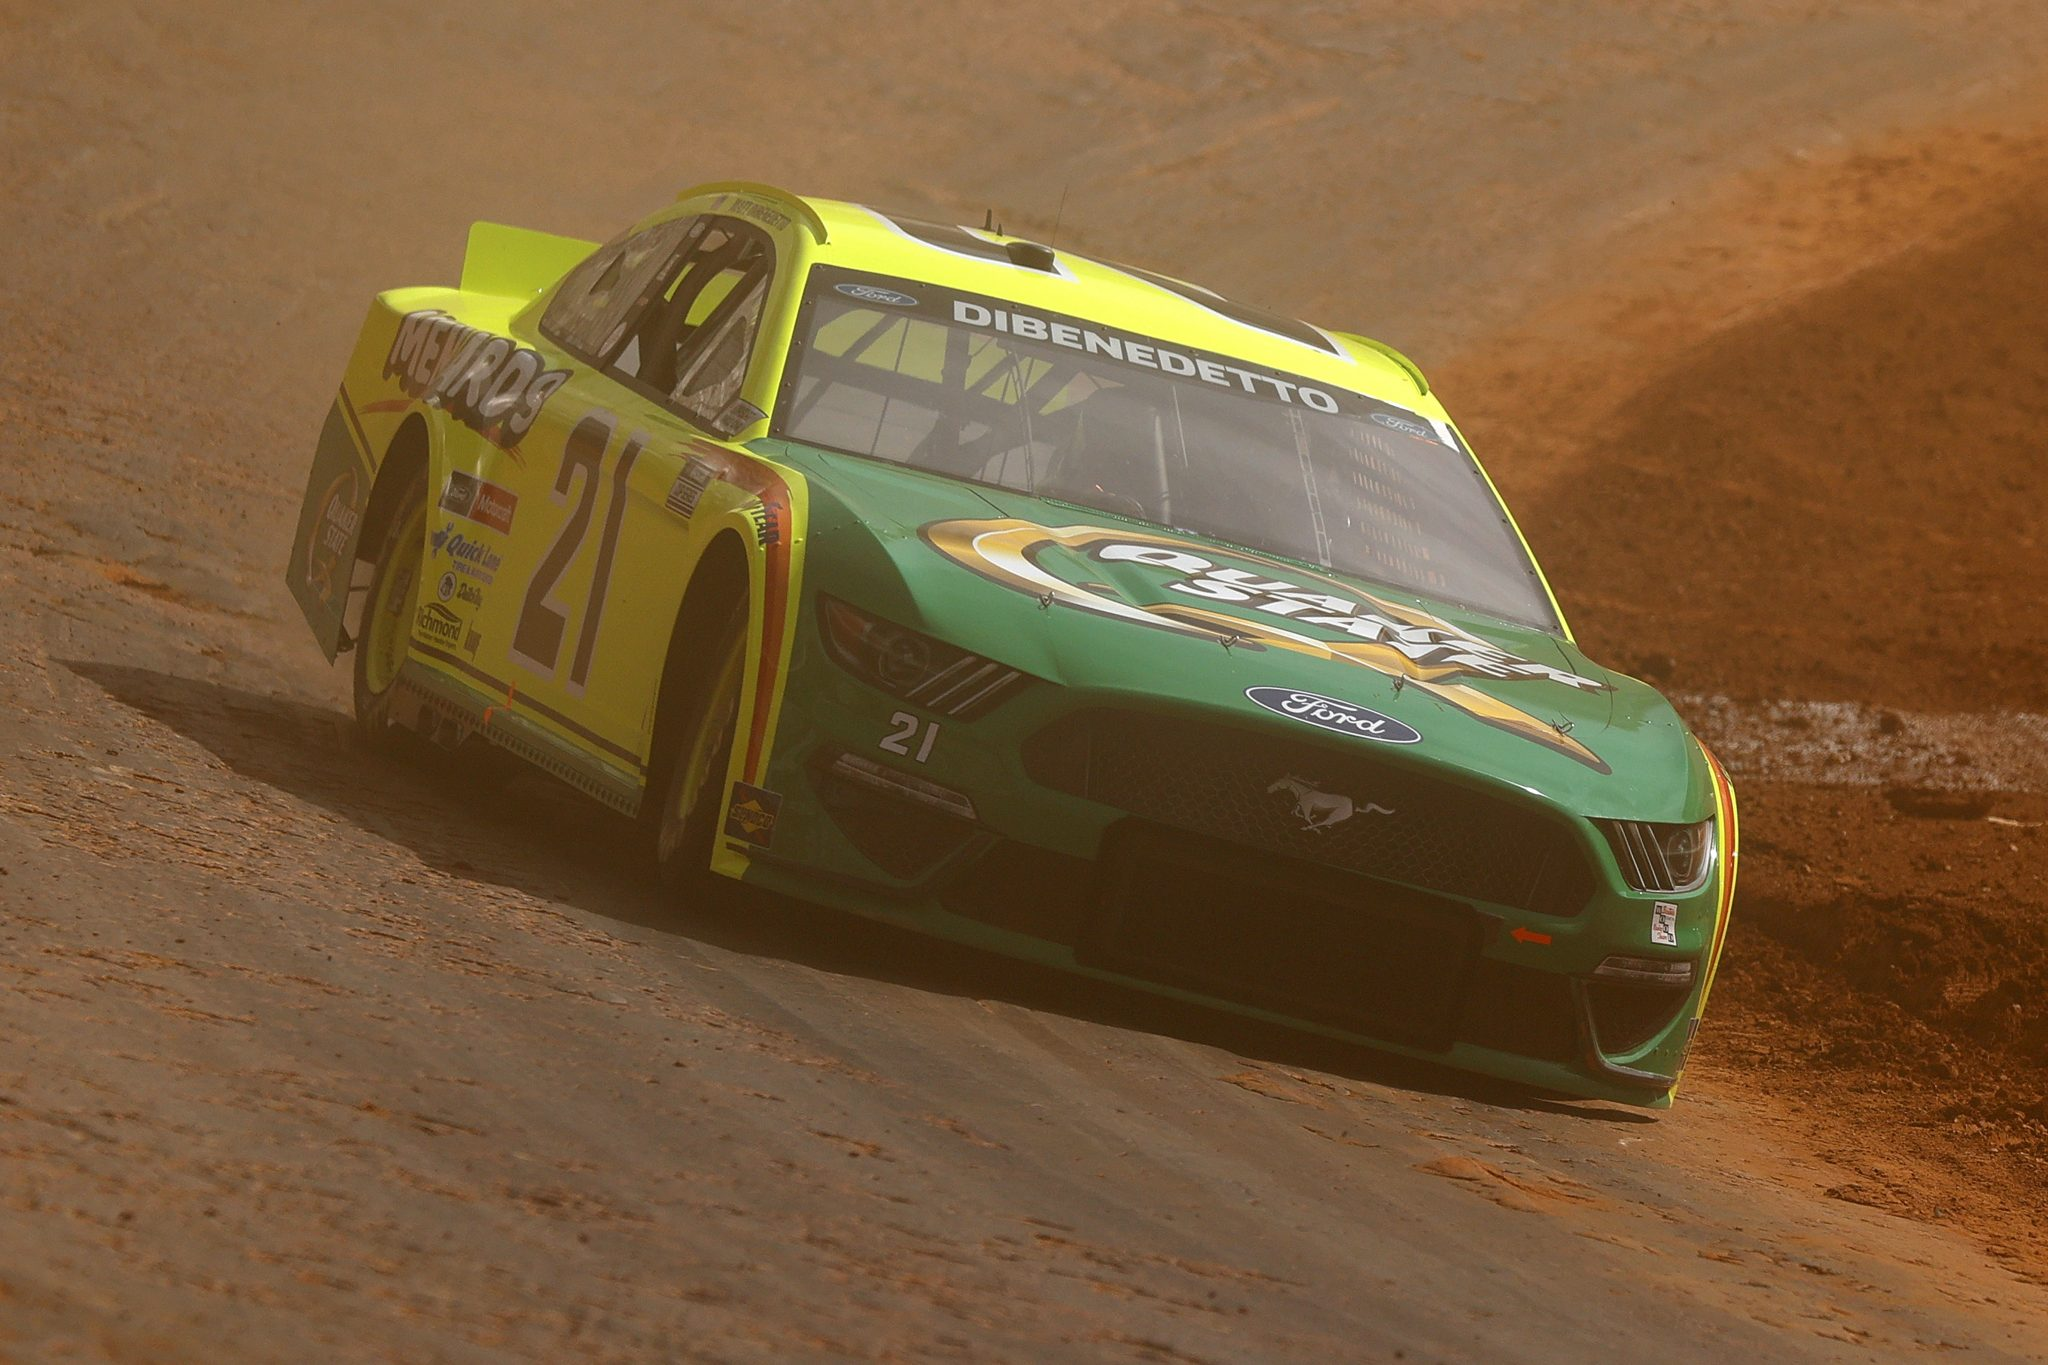 BRISTOL, TENNESSEE - MARCH 26: Matt DiBenedetto, driver of the #21 Menards/Quaker State Ford, Drives during practice for the NASCAR Cup Series Food City Dirt Race at Bristol Motor Speedway on March 26, 2021 in Bristol, Tennessee. (Photo by Jared C. Tilton/Getty Images) | Getty Images